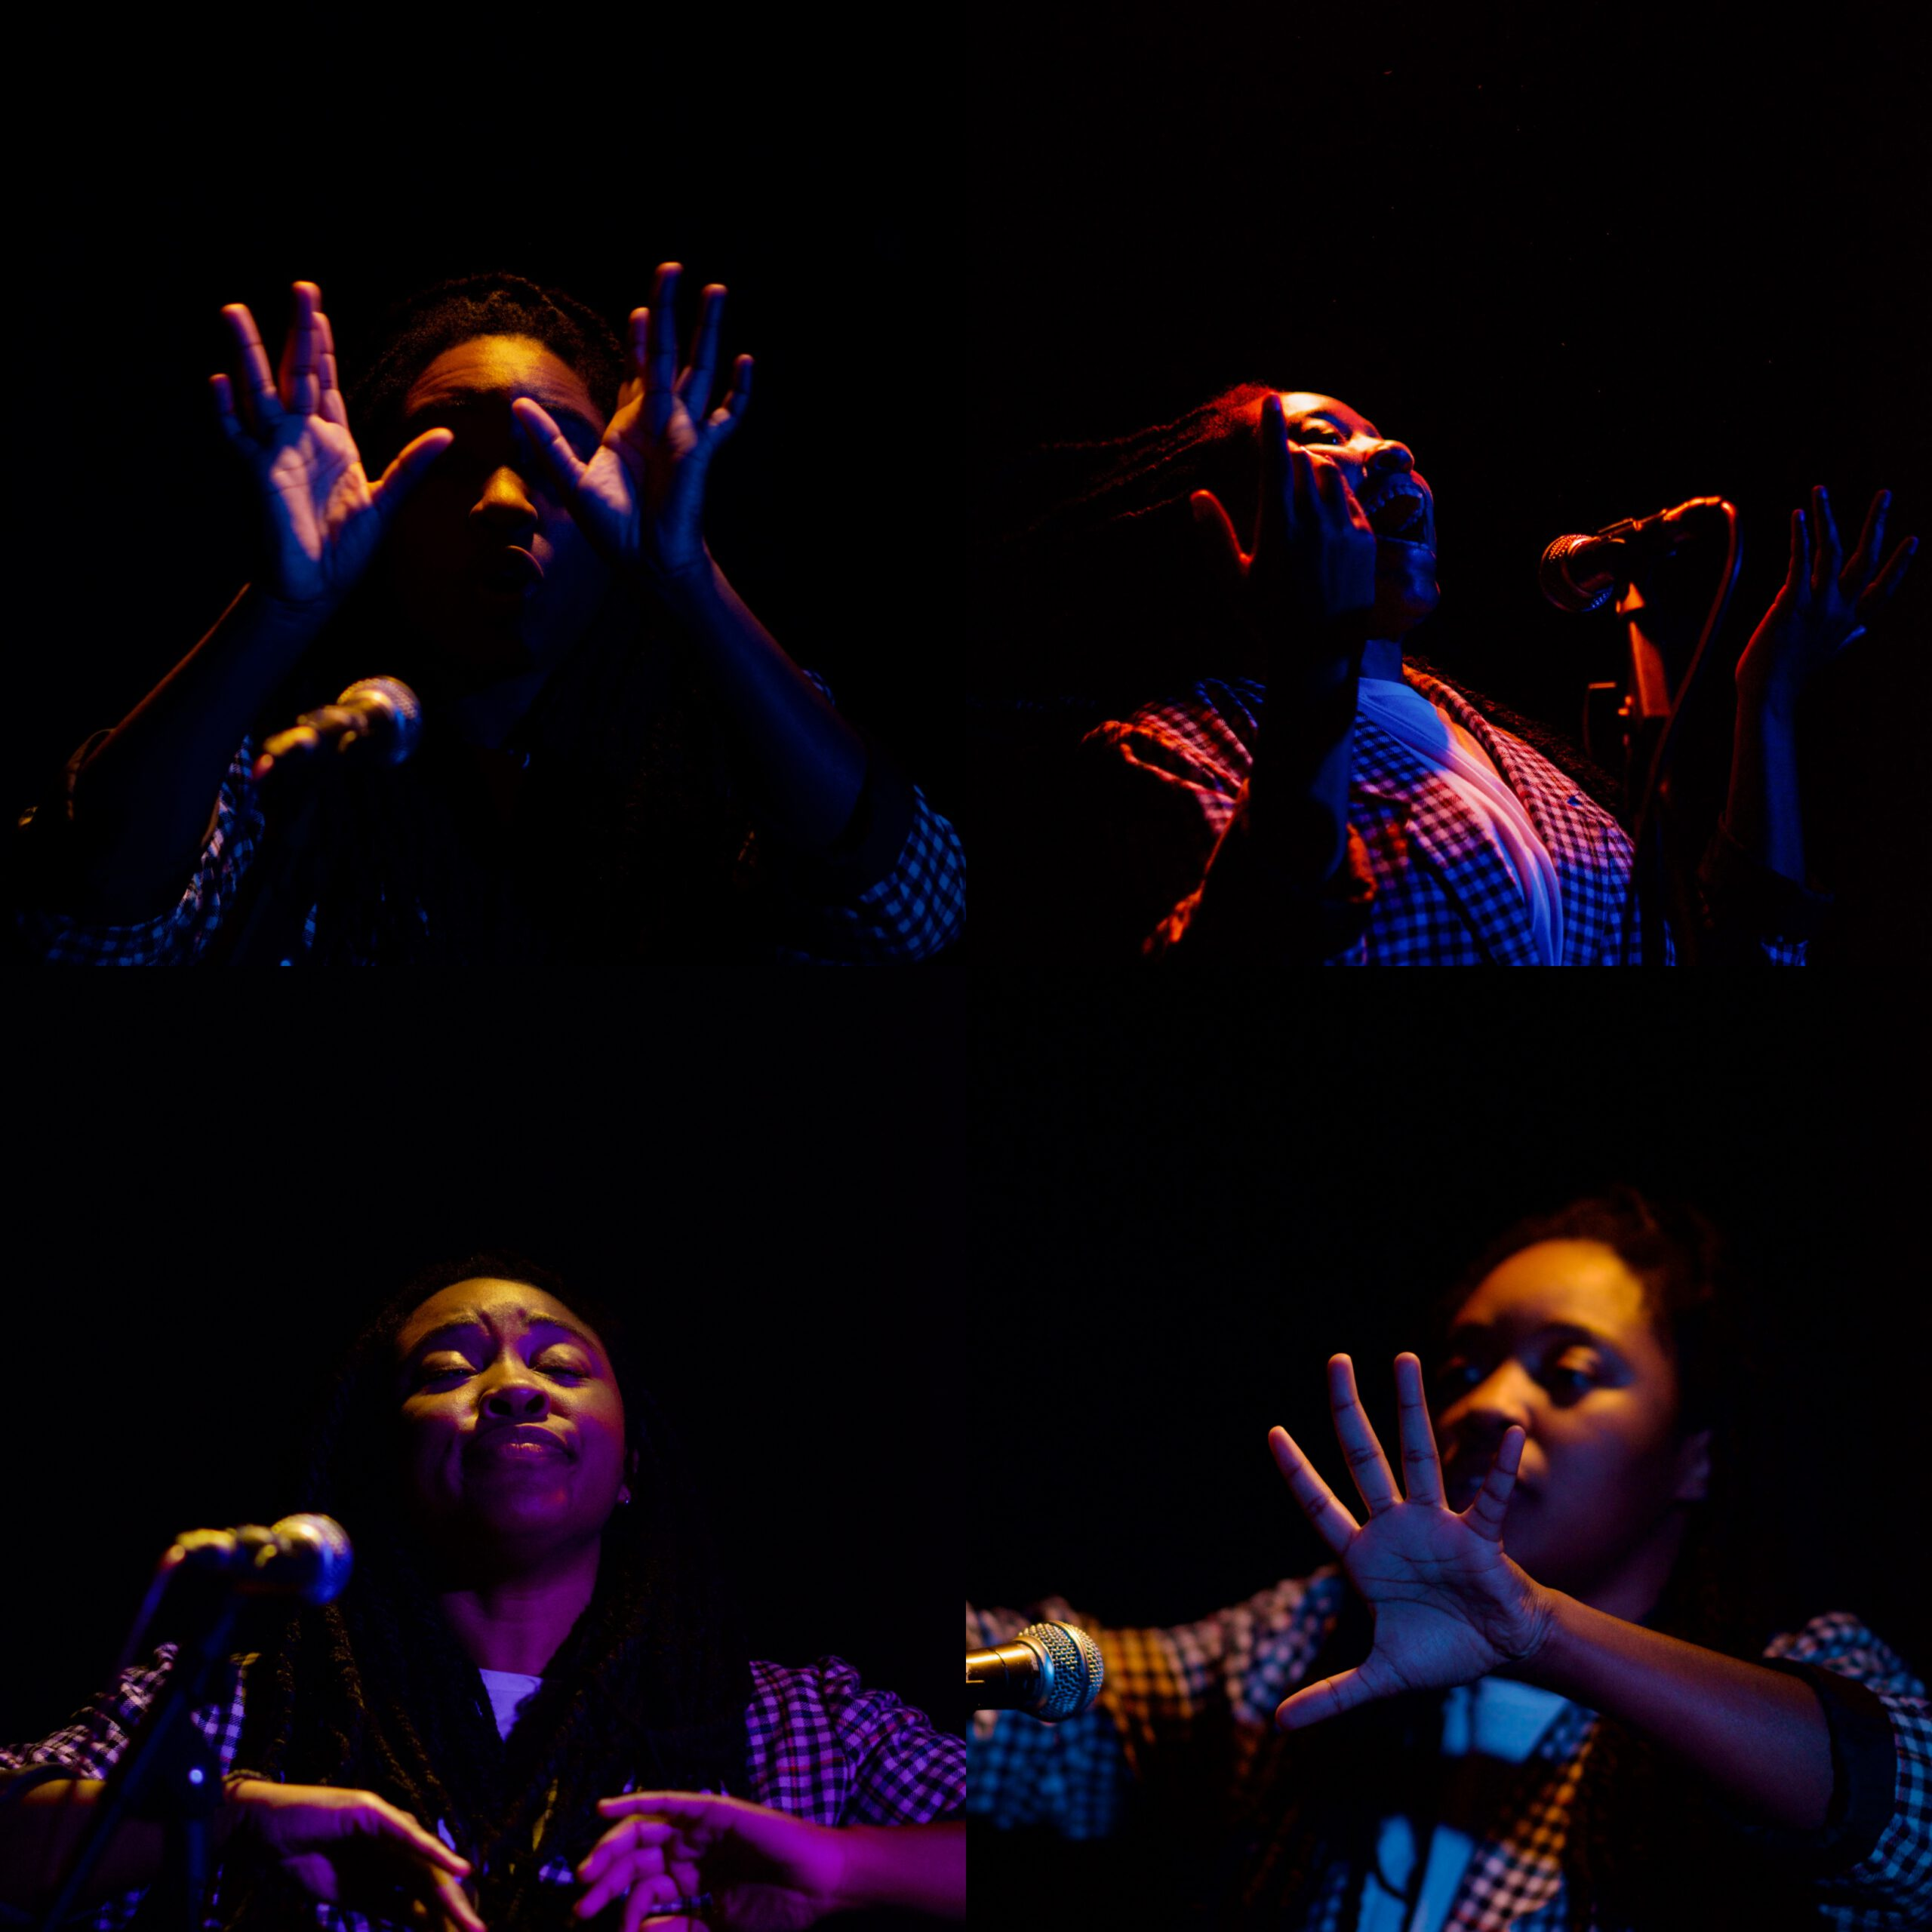 4 images of Xana middle of performing shots